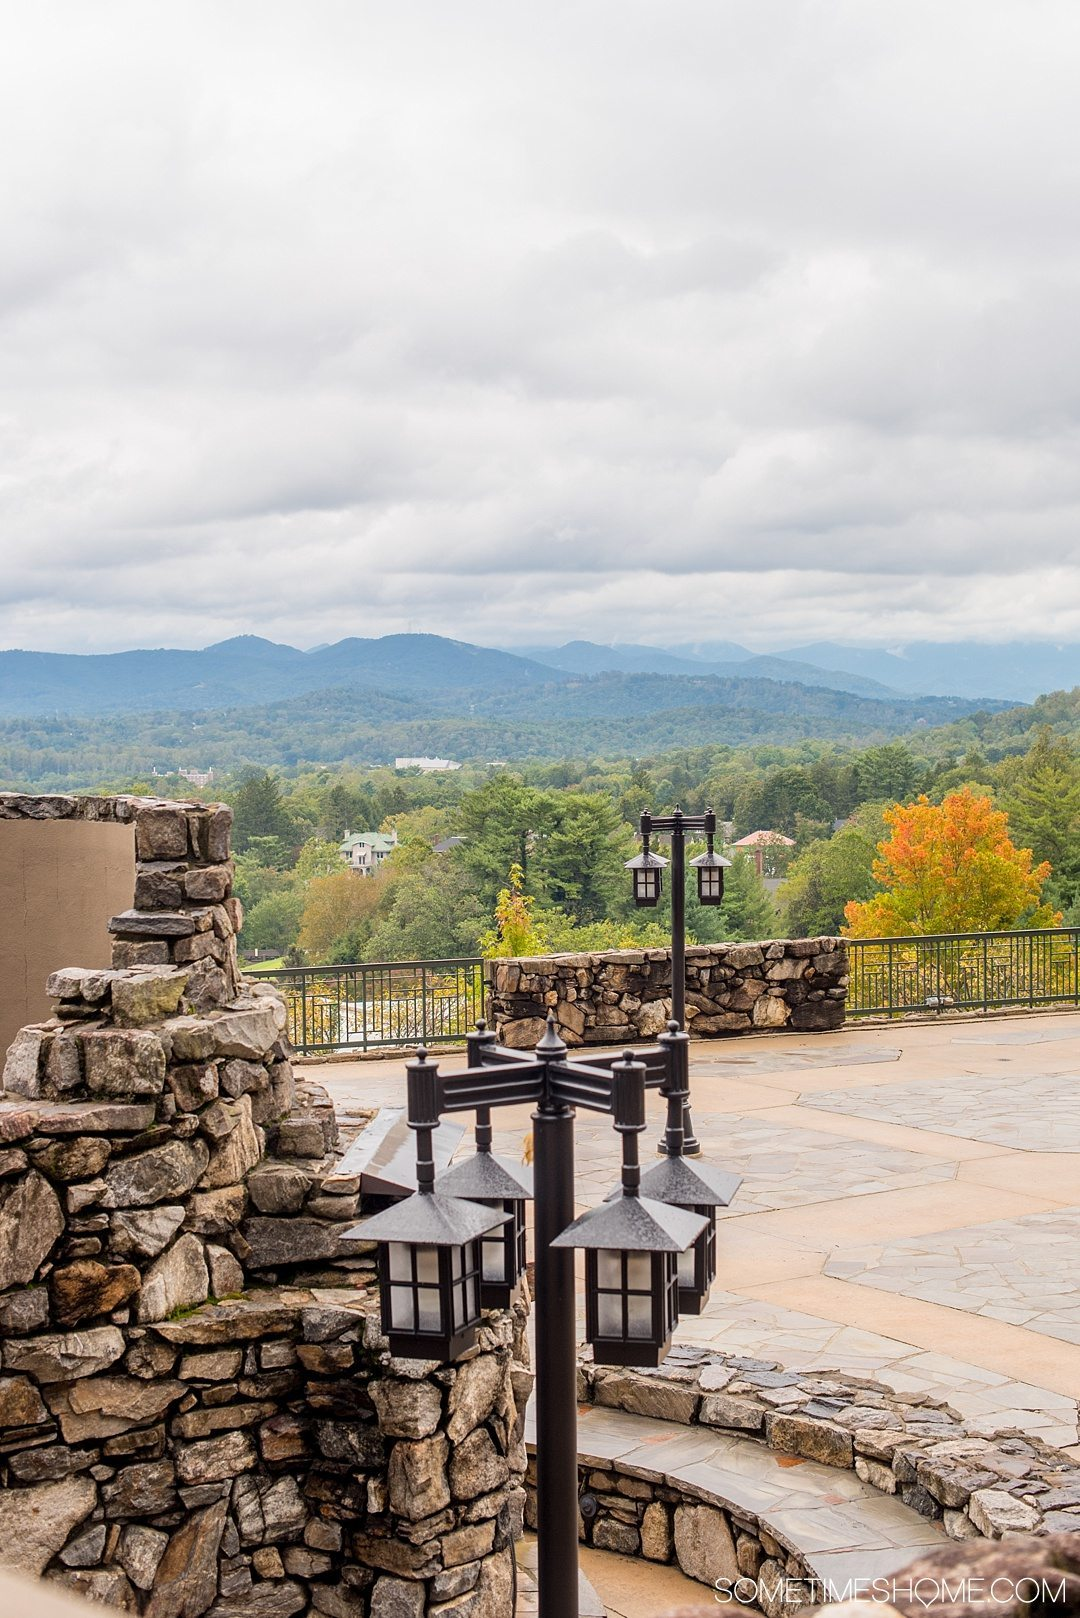 Where to find beer and art in Asheville North Carolina. Photos and locations on Sometimes Home travel blog, including Omni Grove Park Inn's Edison bar with a bee inspired cocktail and beautiful view of the Blue Ridge Mountains.